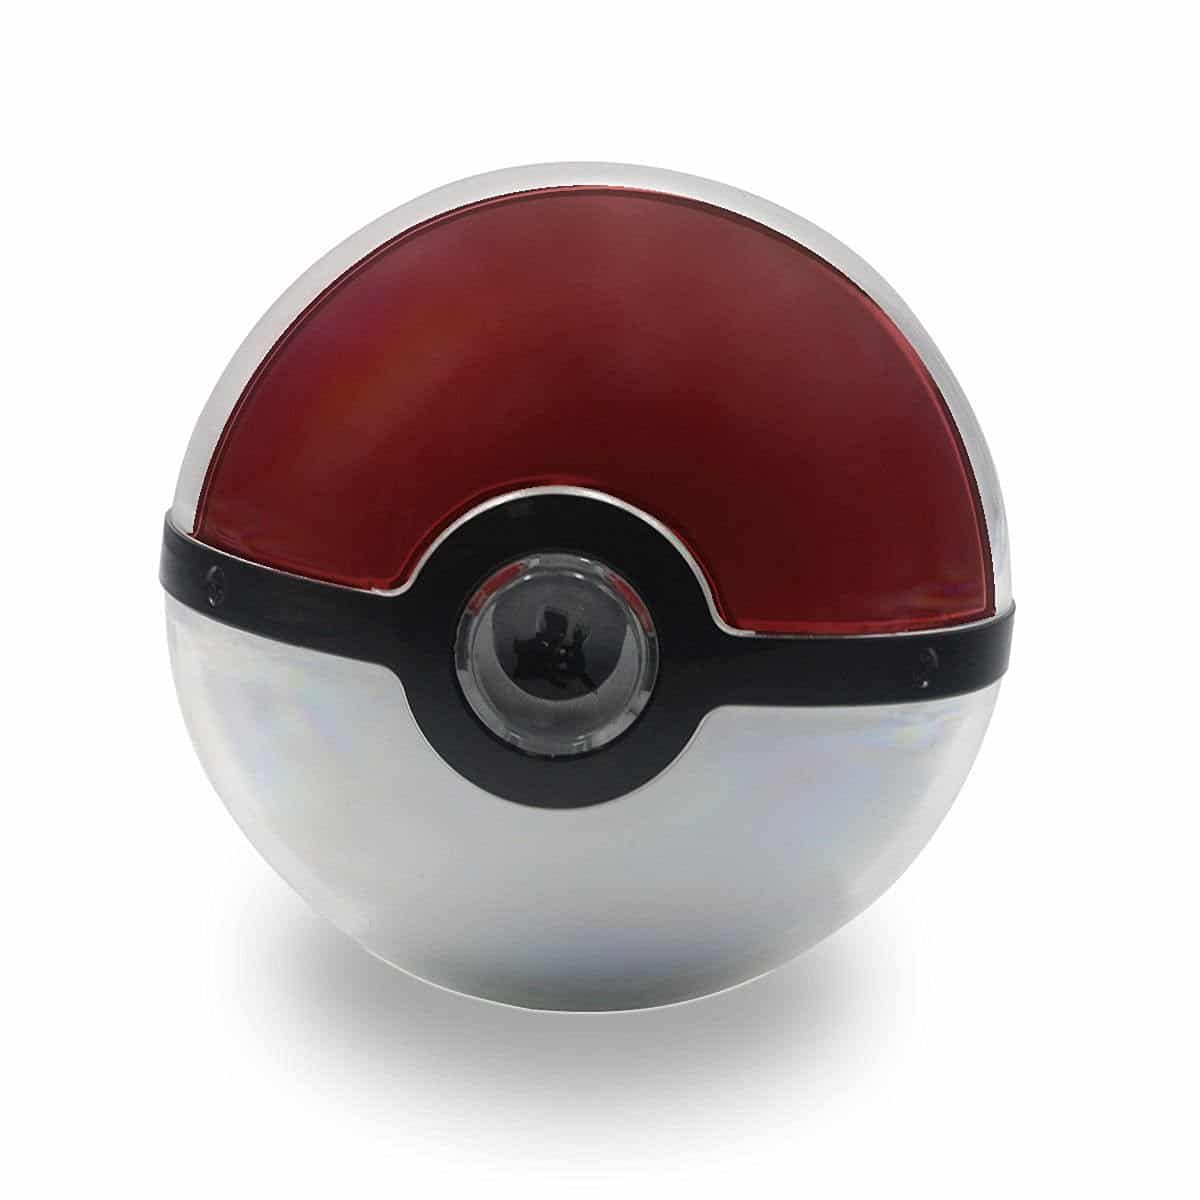 Third Pokemon Go 12000mAh Poke Ball Power Bank USB LED External Battery Charger